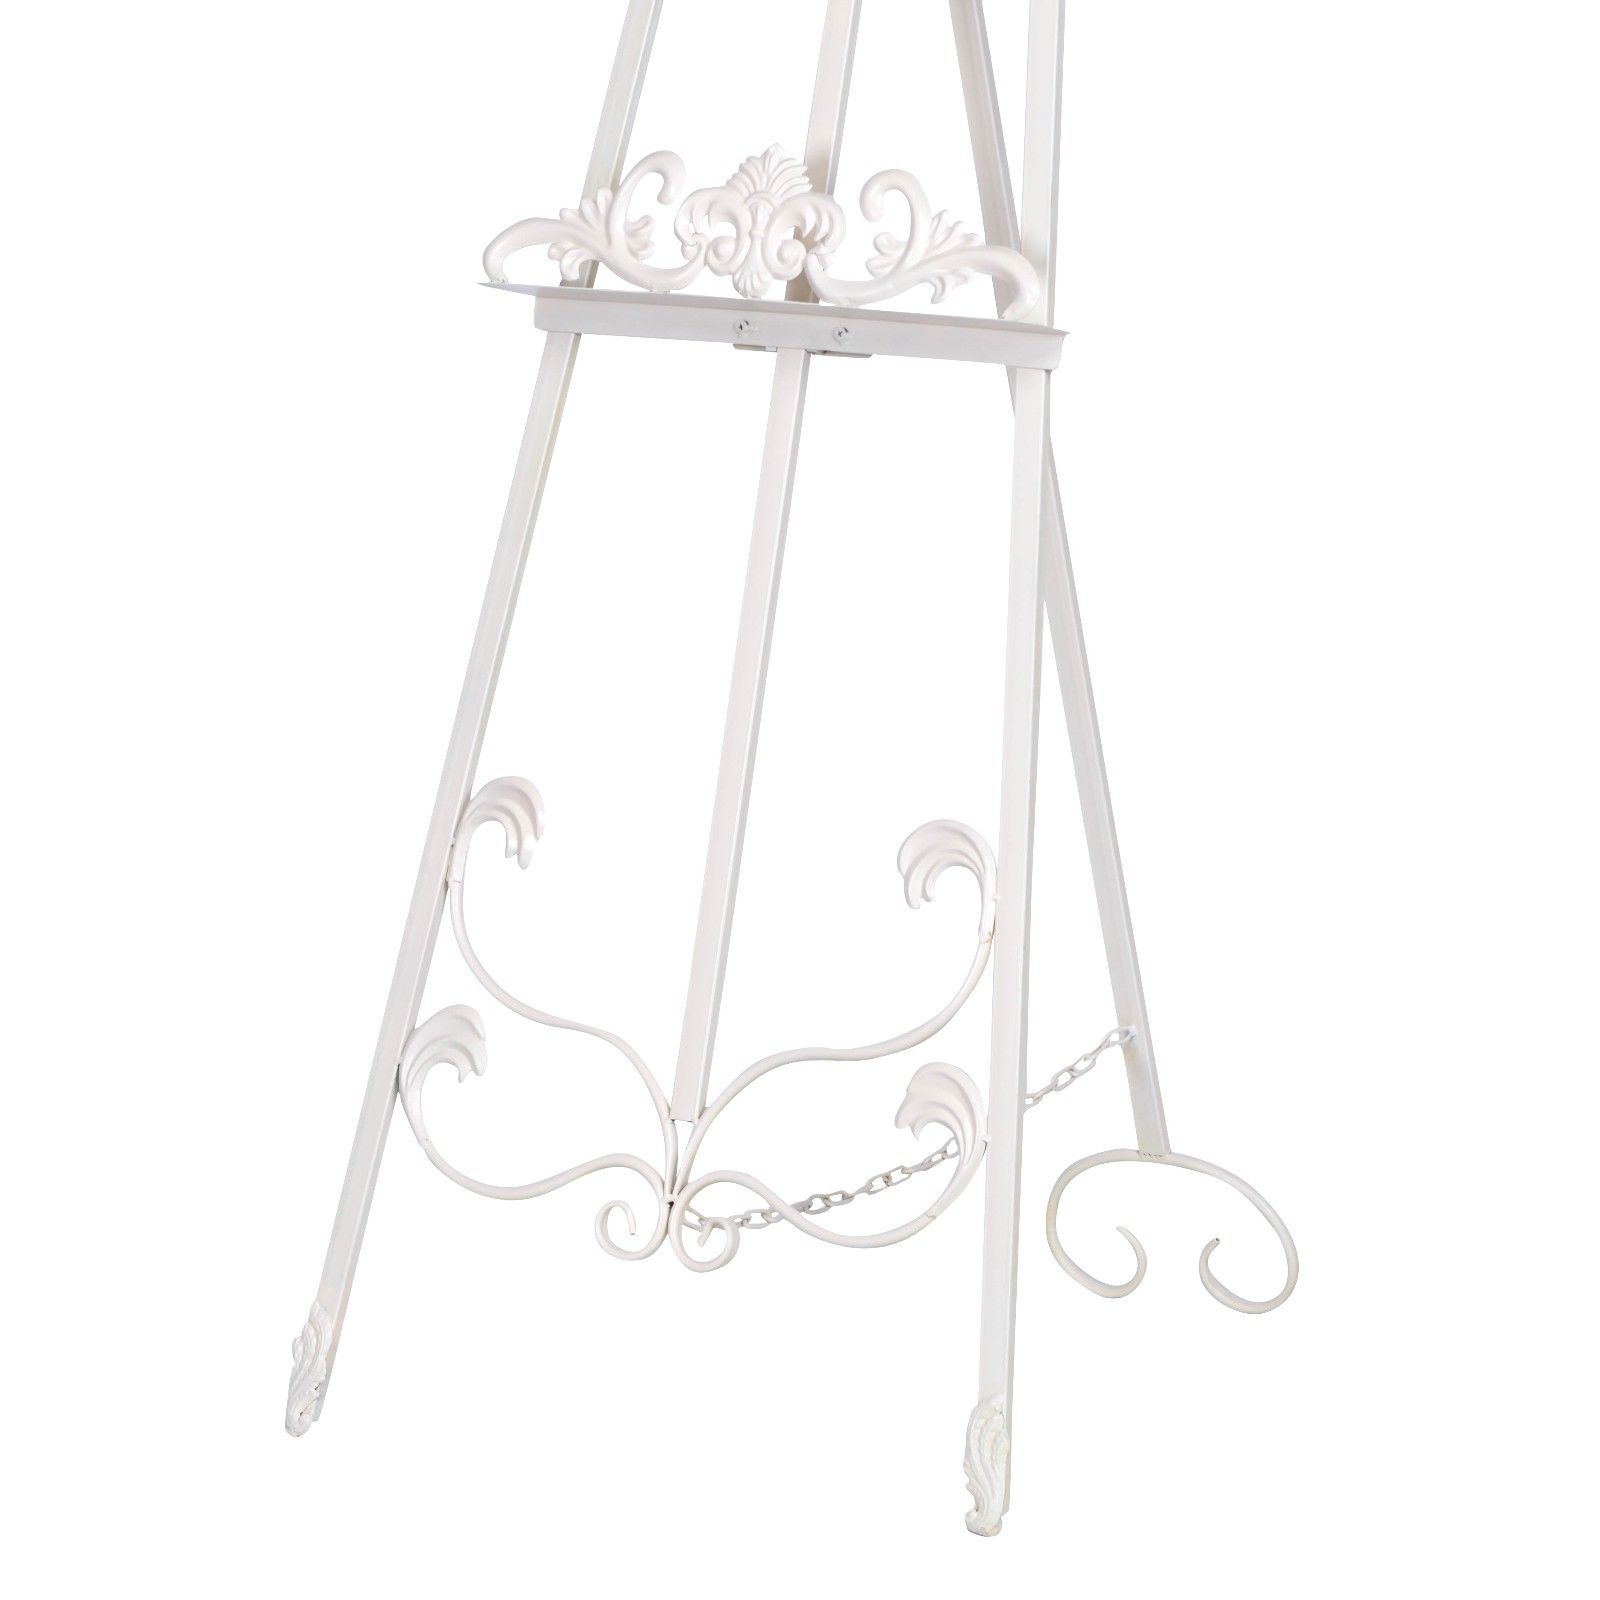 Cream Metal Easel